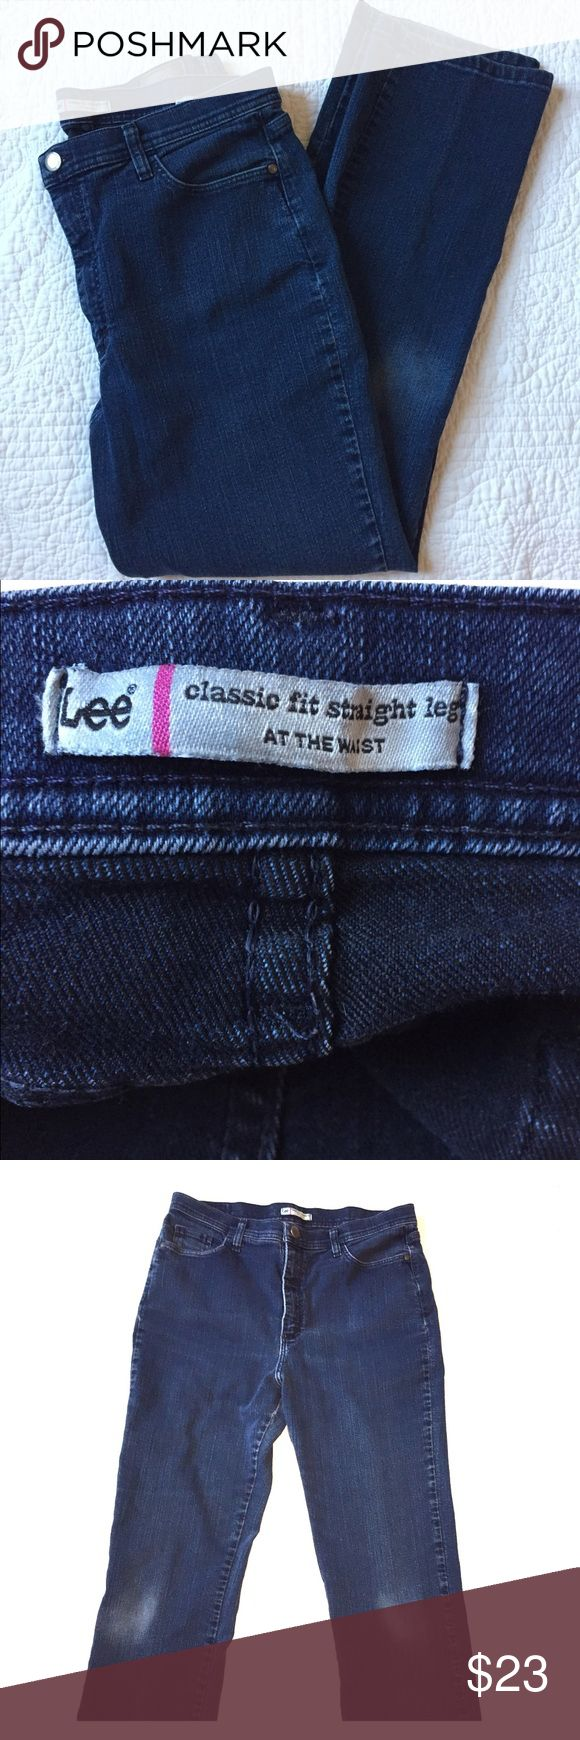 Lee Dark Denim Pants Beautiful Dark Denim Jeans a classic!  Classic Fit Straight Leg at the waist size 16M Pre-owned Great Shape Well made! Lee Jeans Straight Leg